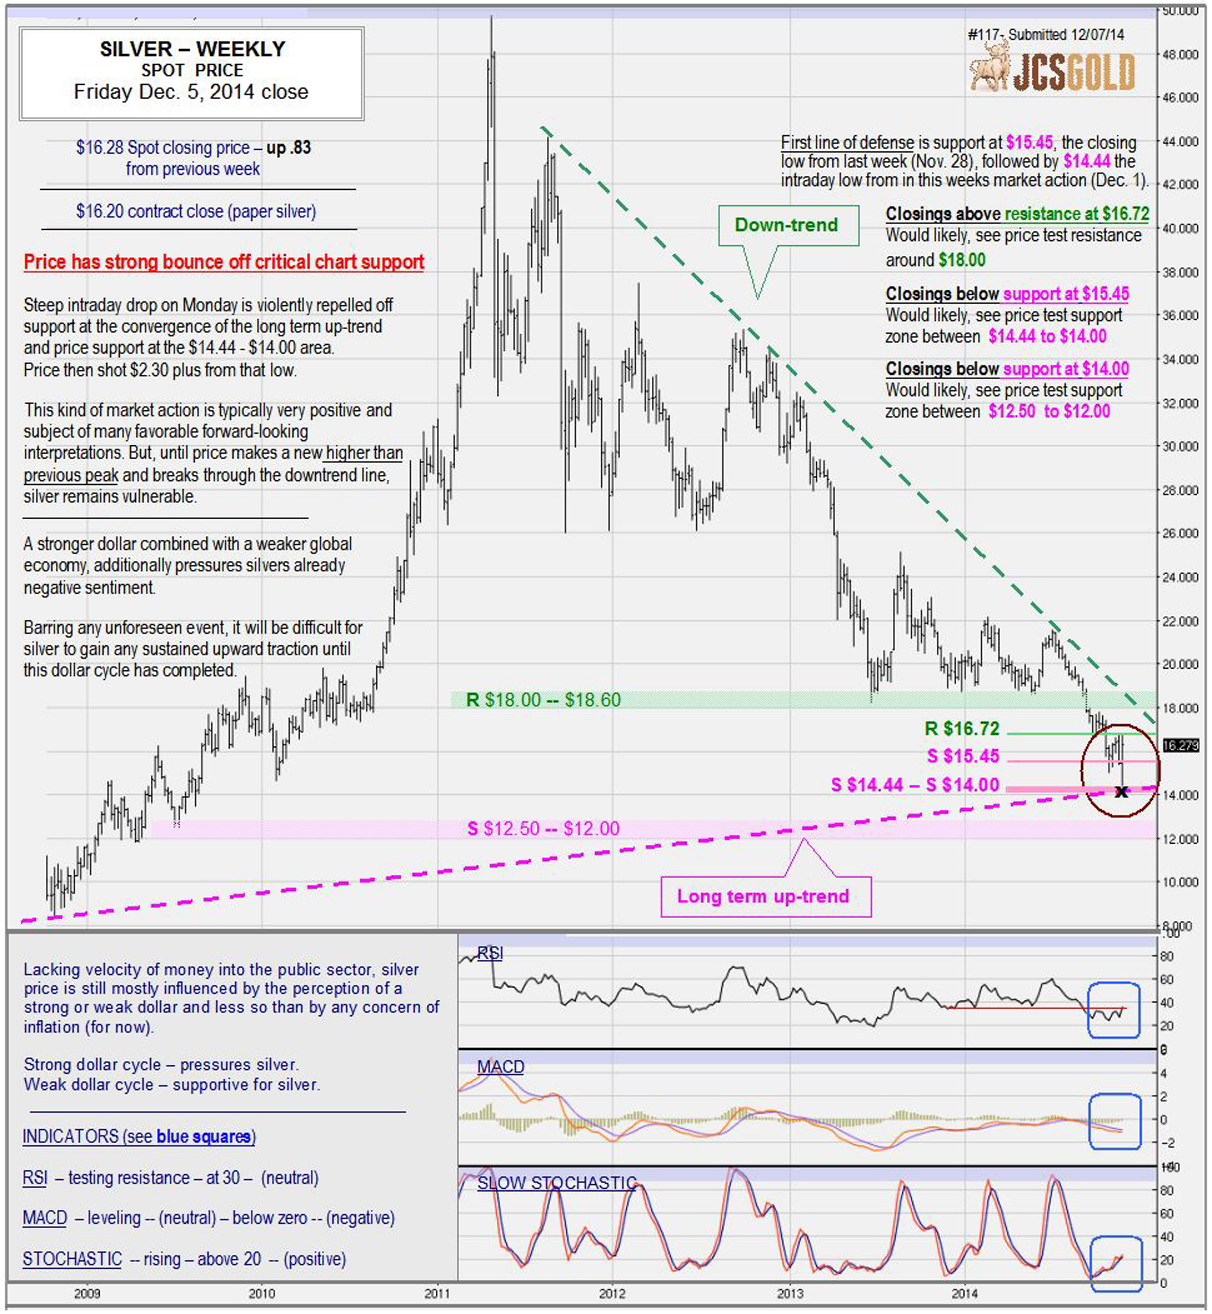 Dec 5, 2014 chart & commentary